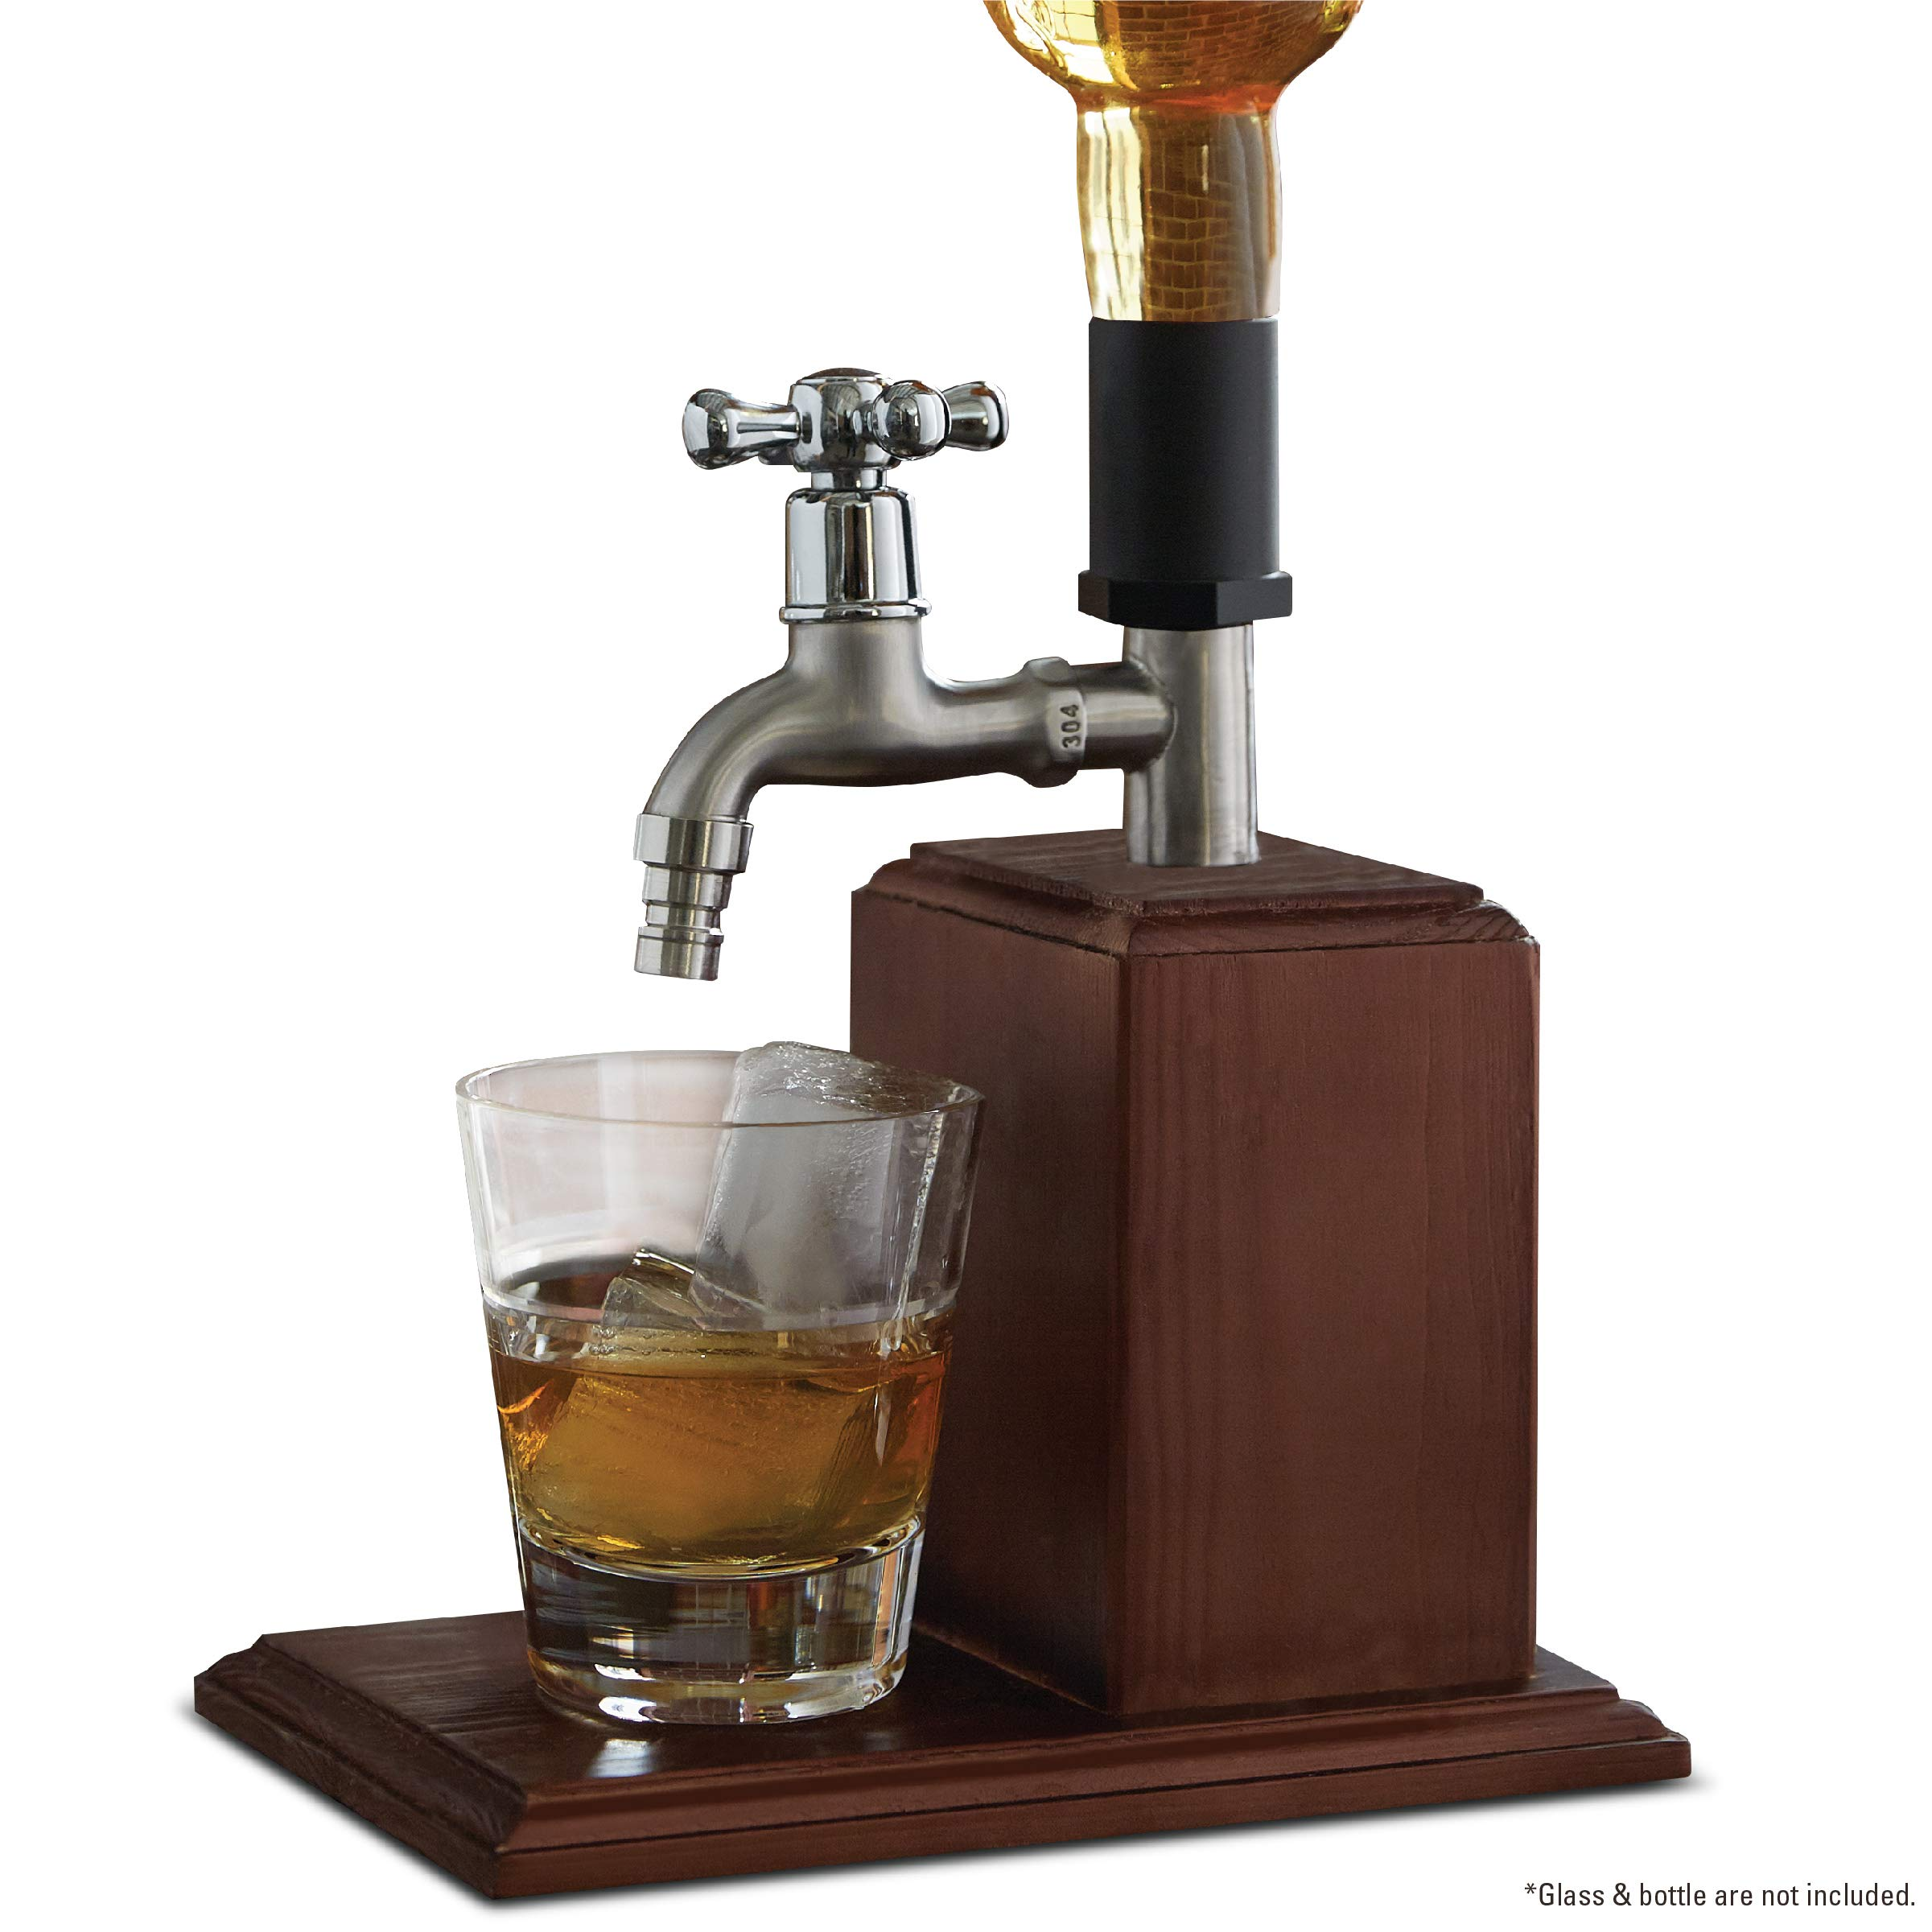 Refinery and Co. Drink Dispenser for Whiskey and Other Libations, Easy Dispensing Spout by Refinery and Co.